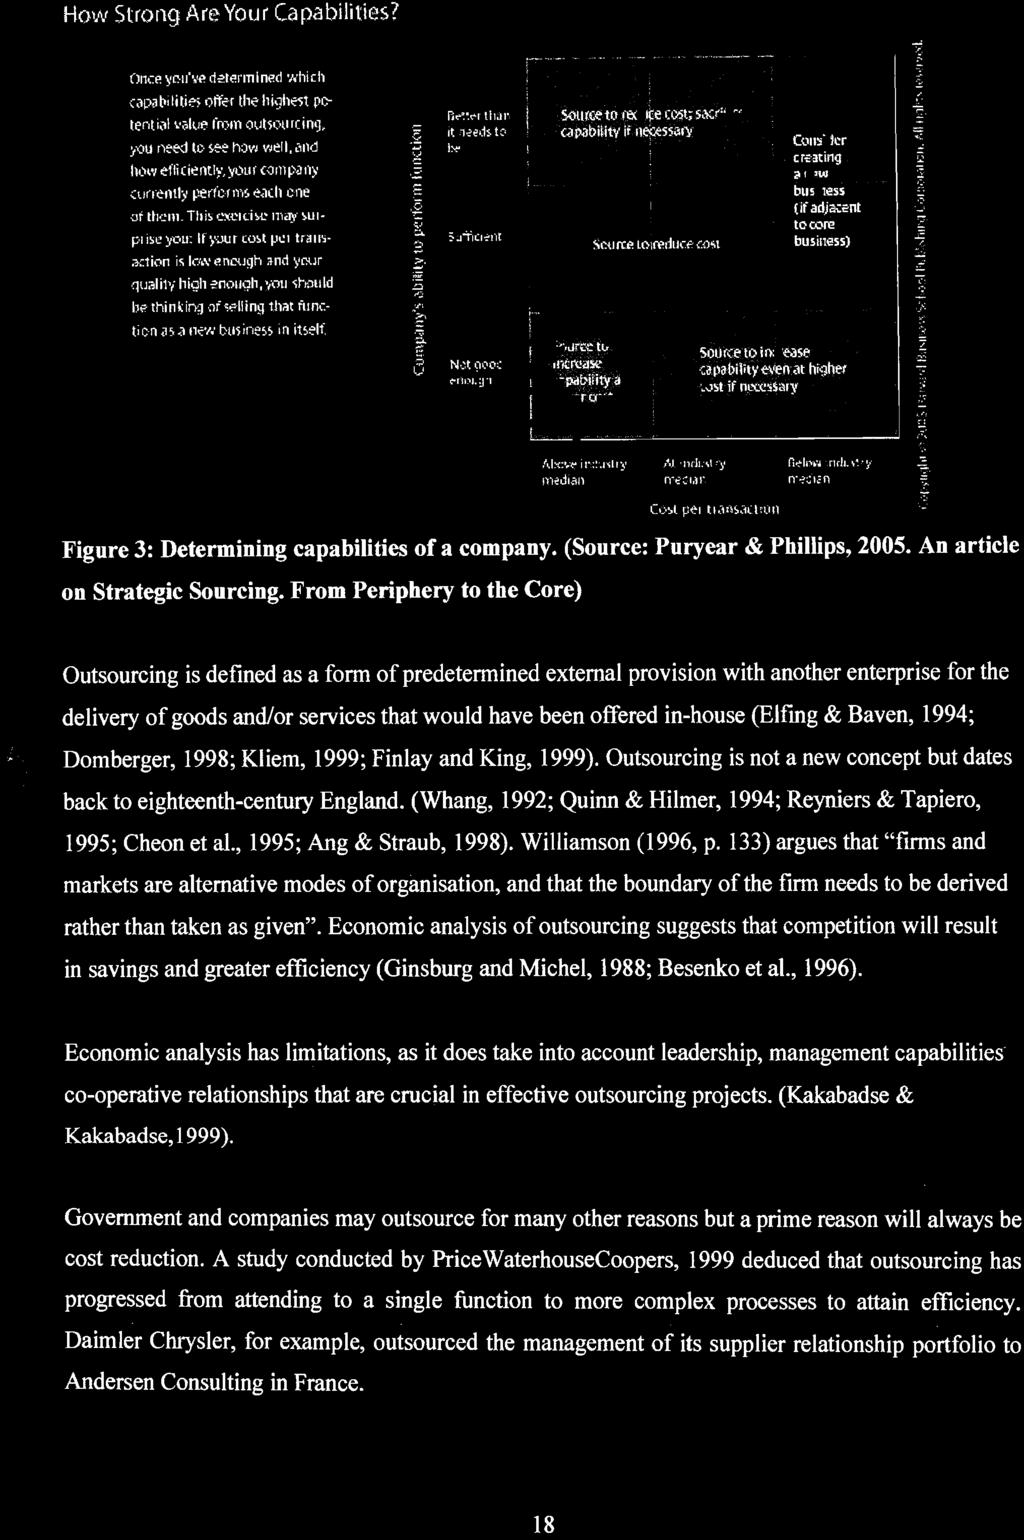 Analysis Of Fleet Management Outsourcing In The Public Sector Pdf 1999 Chrysler T 038 C Limited 38 Digital Transmission Fuse Box Diagram Xtlcist 1l1jy Suipi Isc You Ifjui